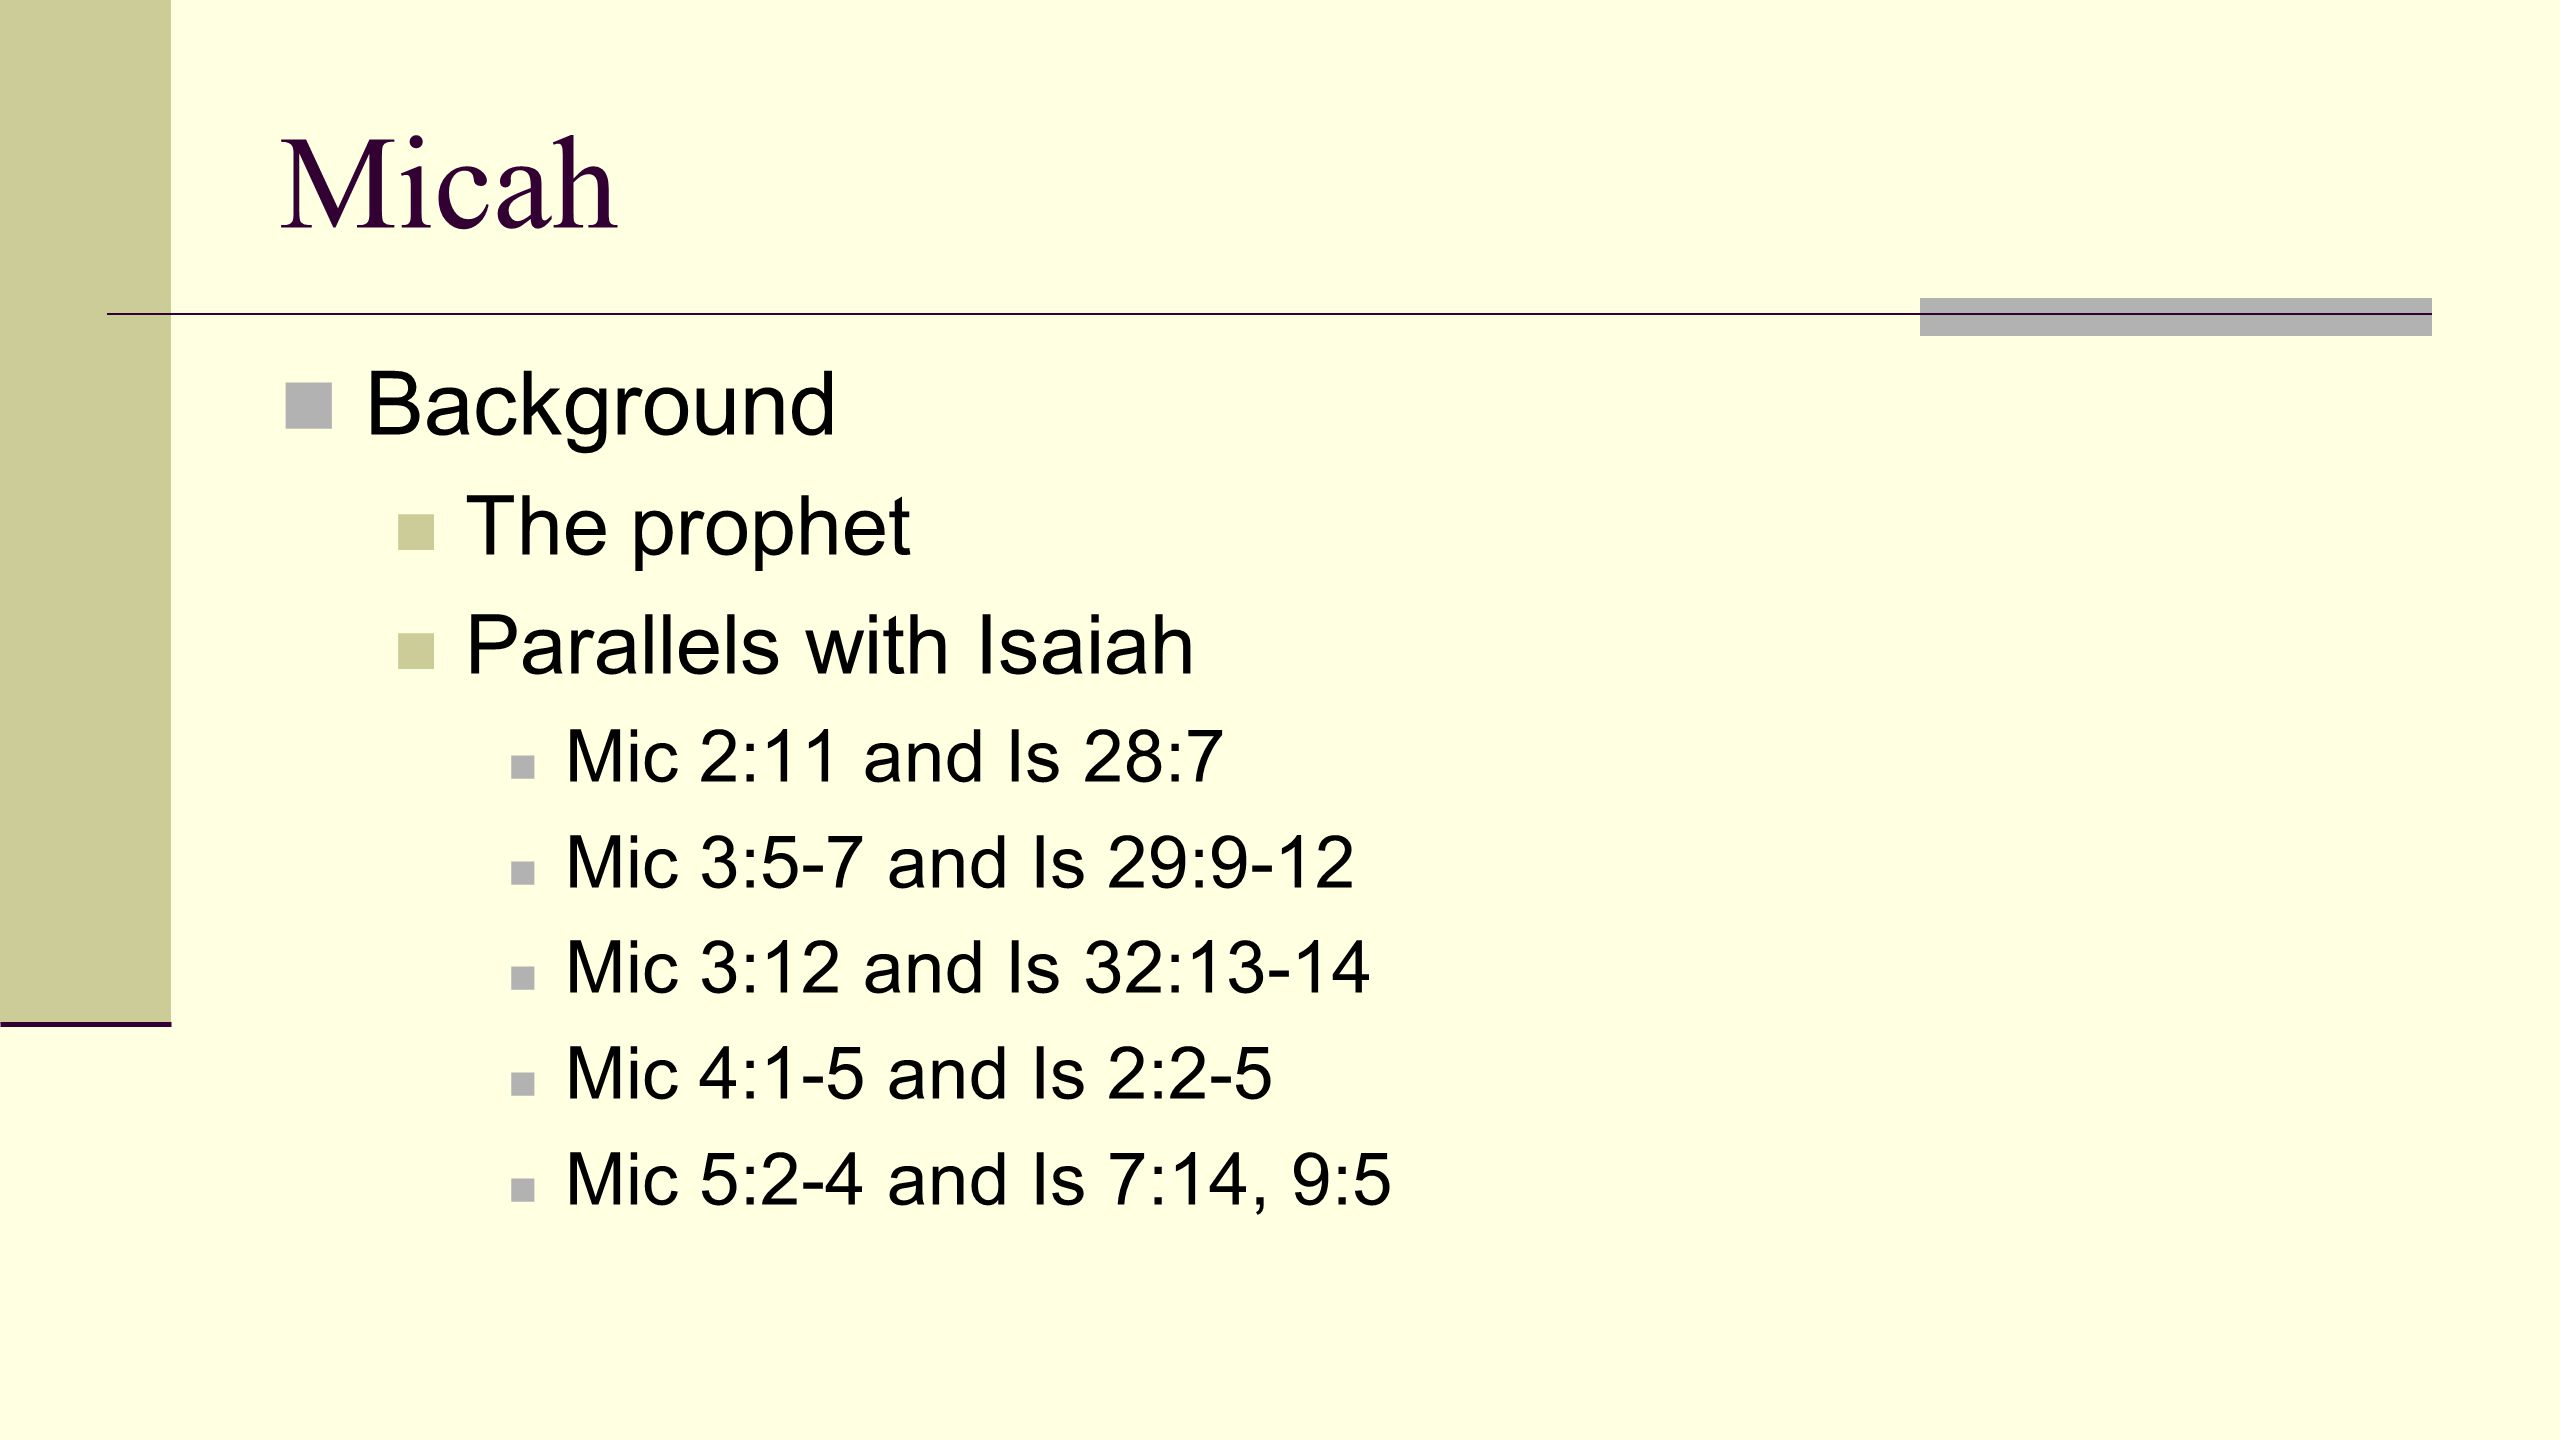 Micah Background The prophet Parallels with Isaiah Timeline Span of 20-50 years Very difficult times See 2 Ki 15:32 – 20:21, 2 Chron 27:1-32:33